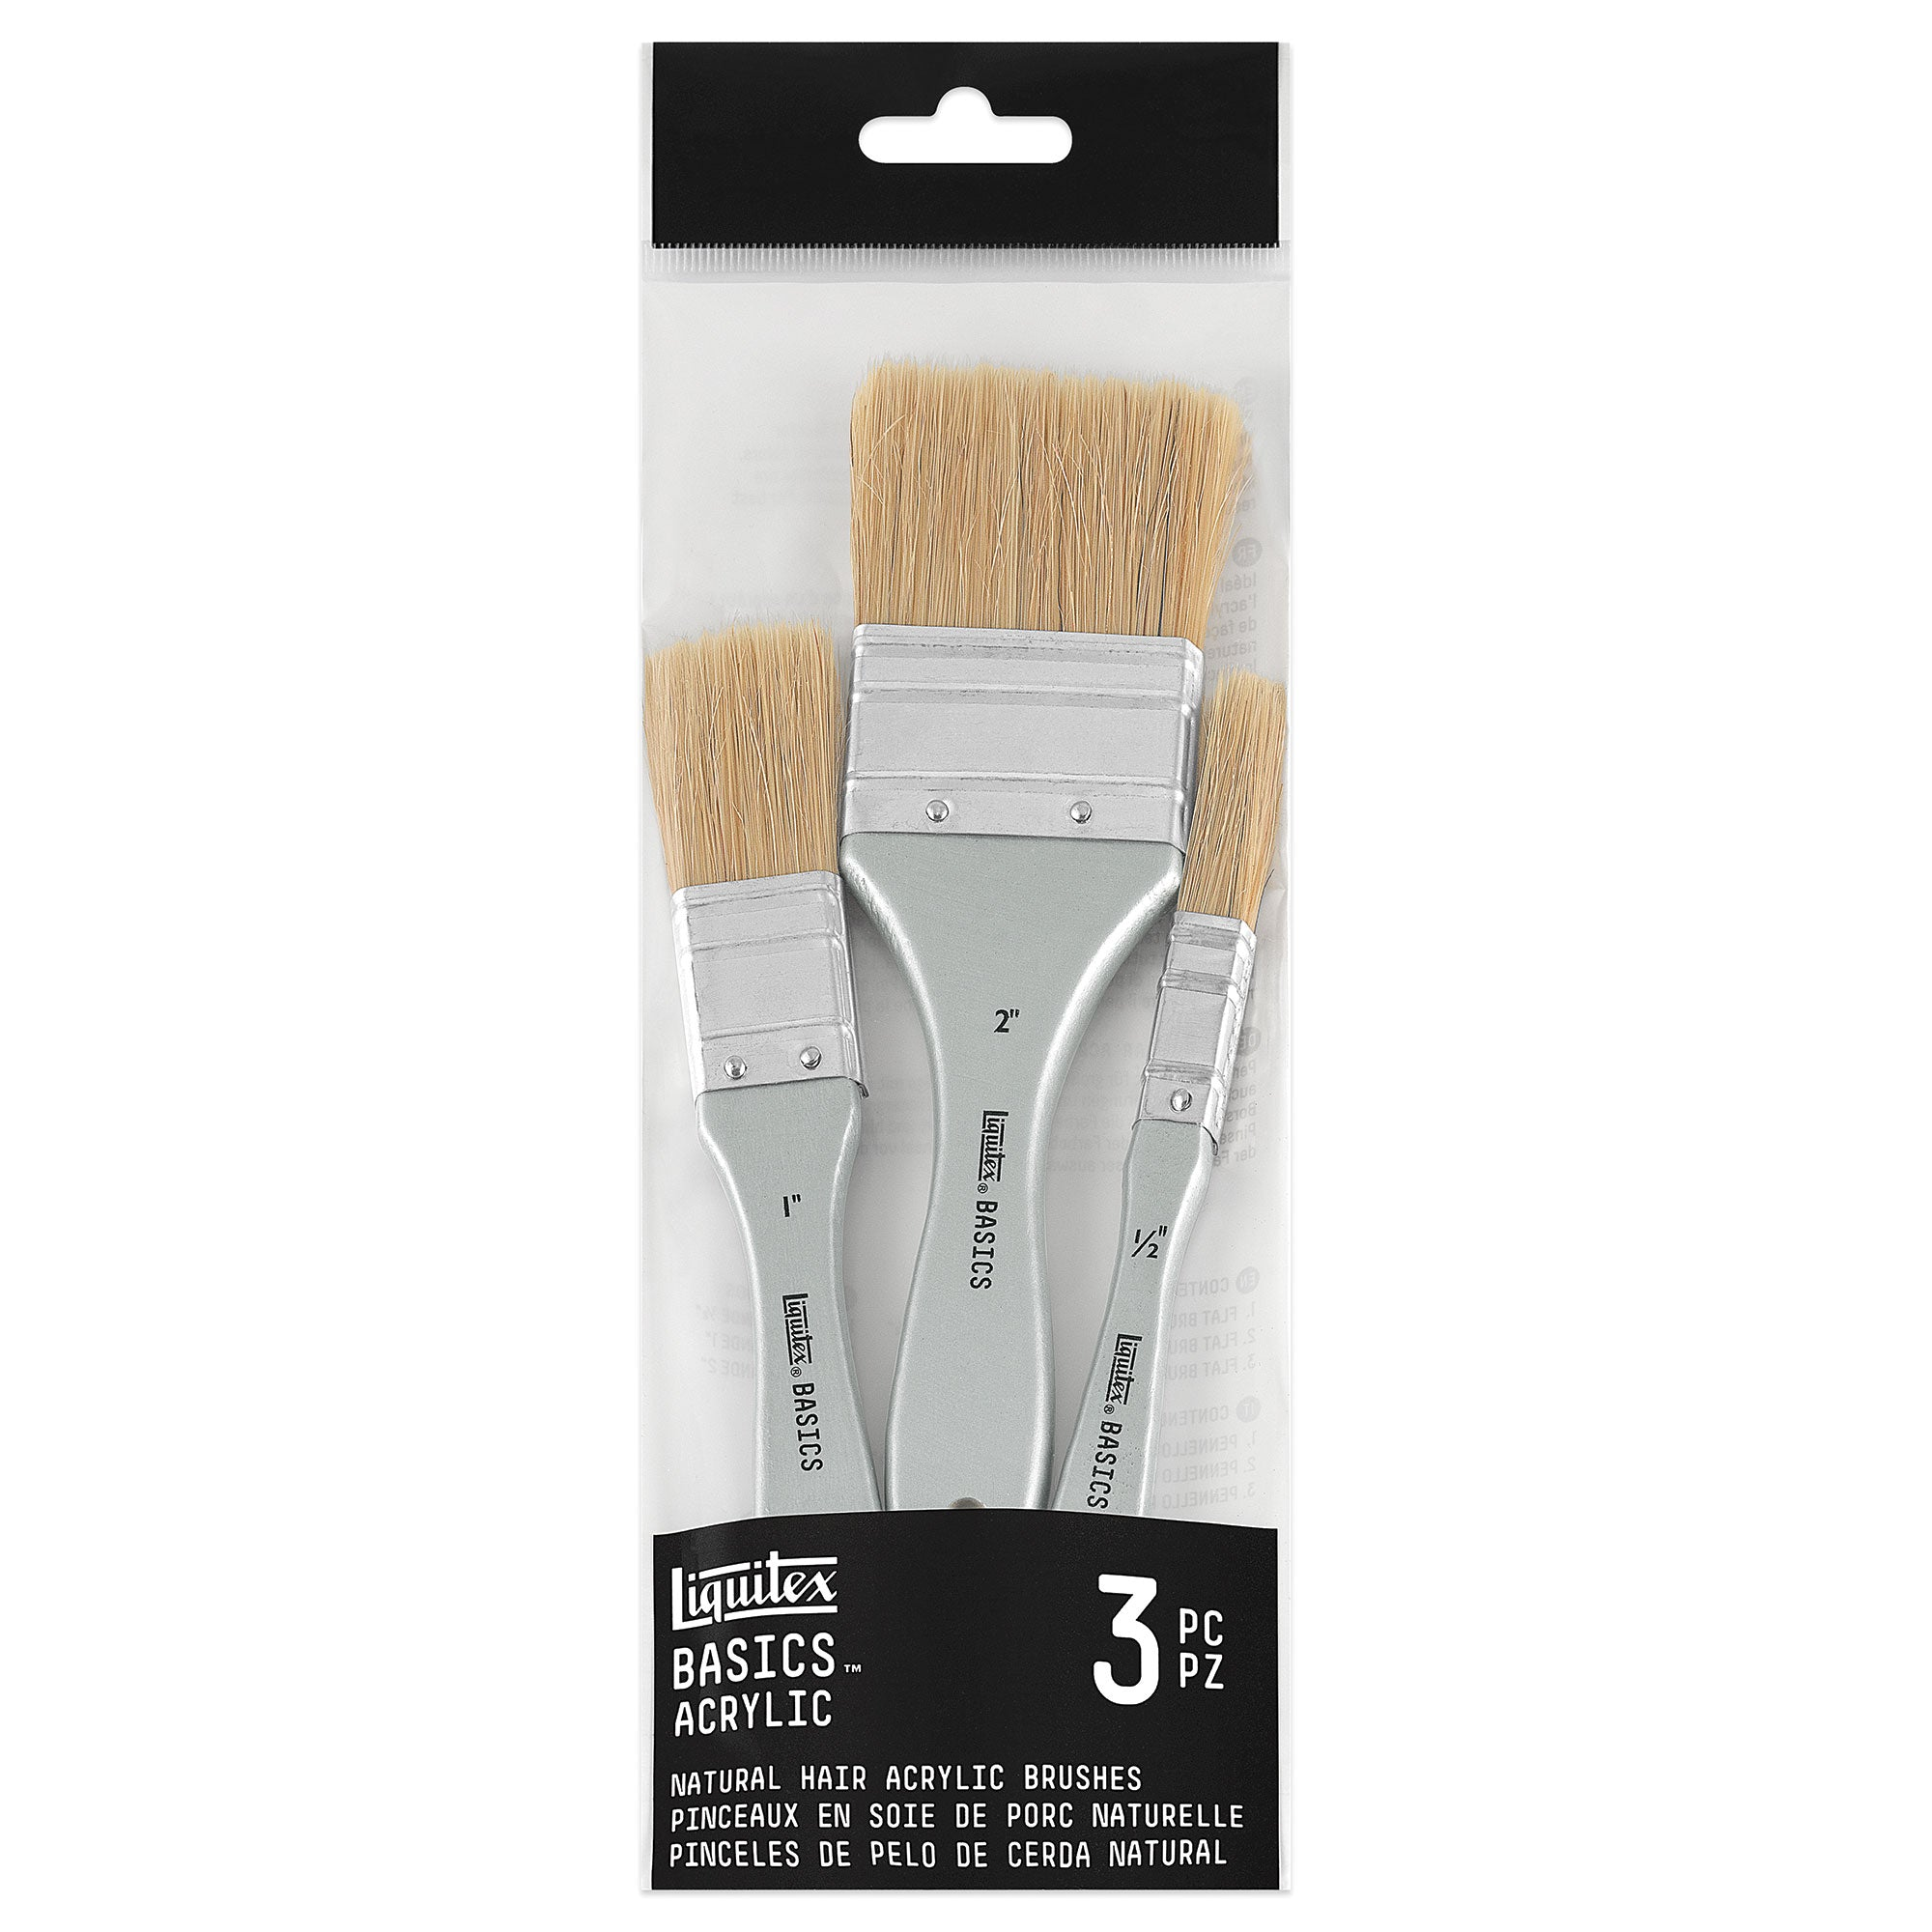 Liquitex Basics Natural Hair Acrylic Brushes - Pack of 3